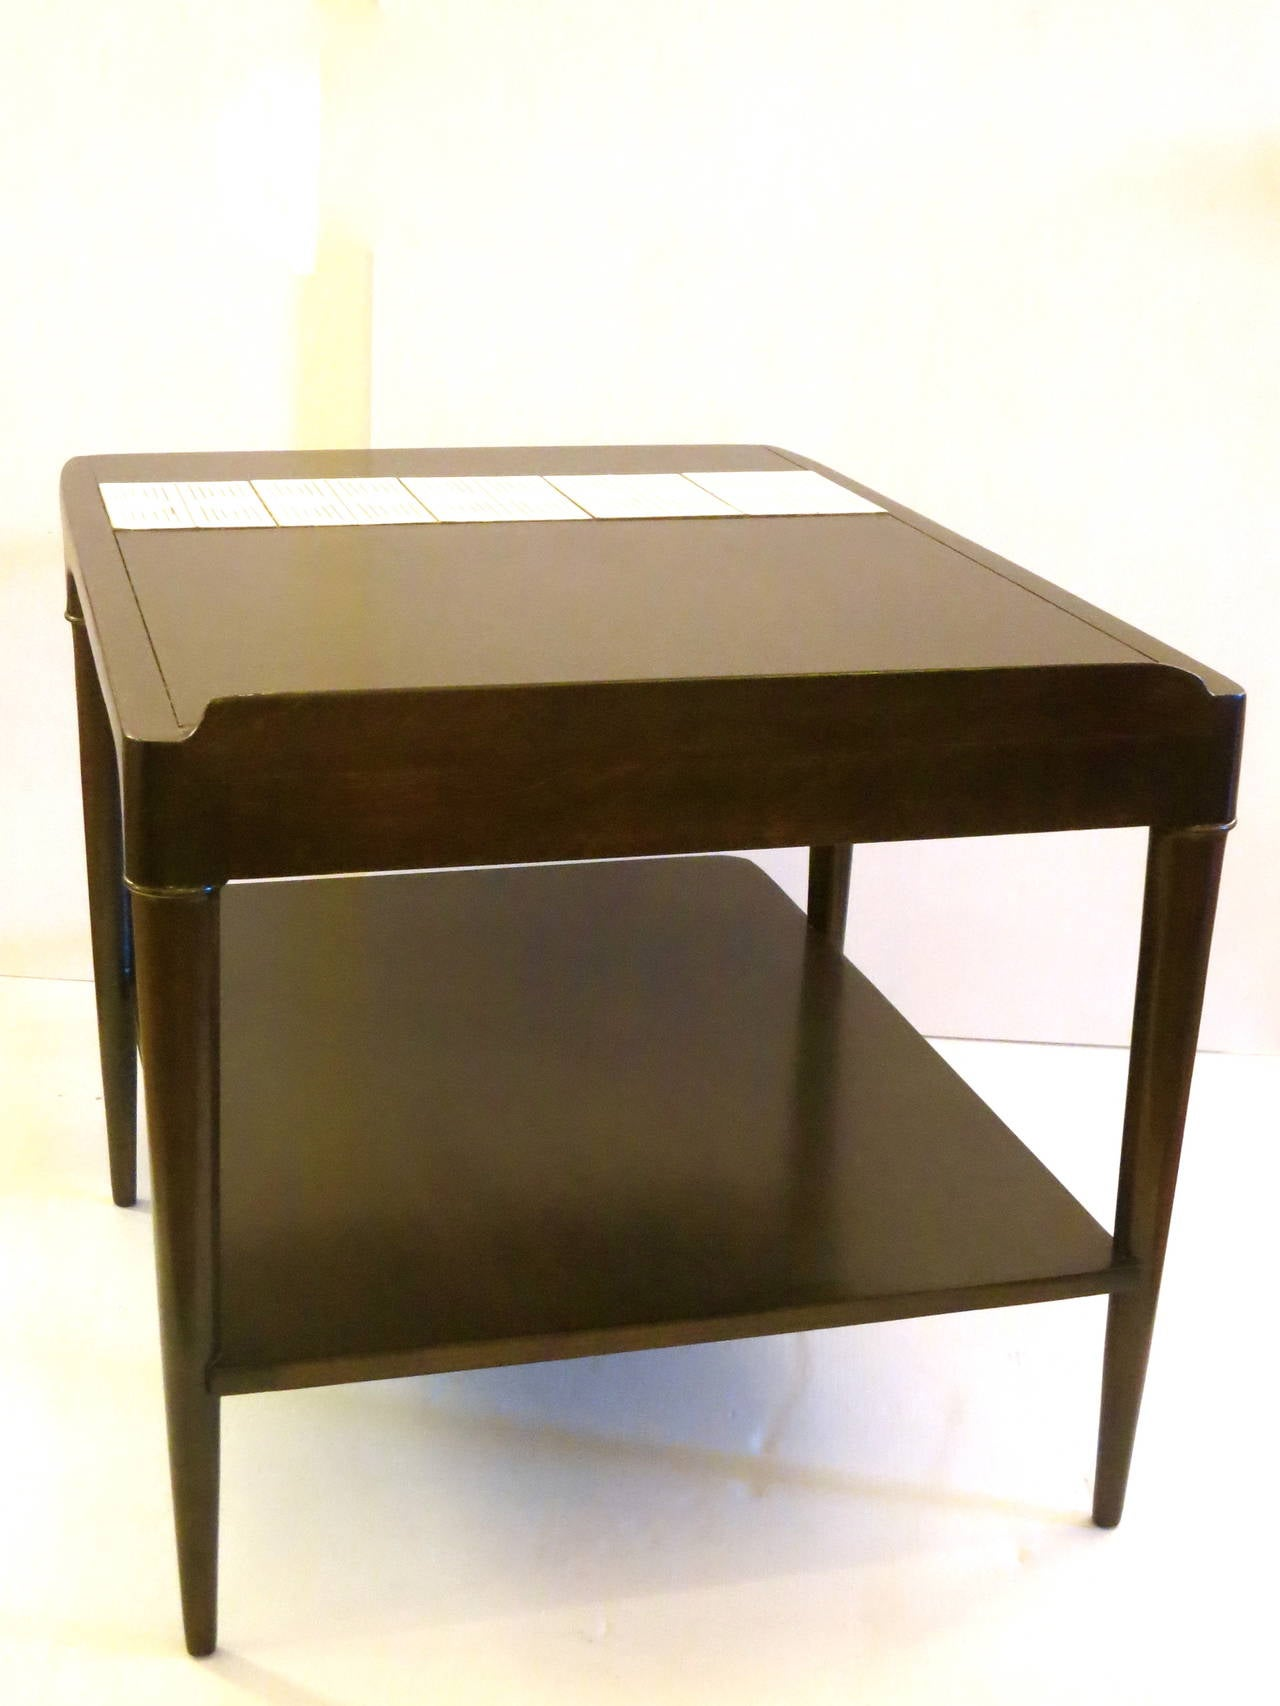 Mid Century Wedge Edge Cocktail Table With Inlaid Tile For Sale At 1stdibs